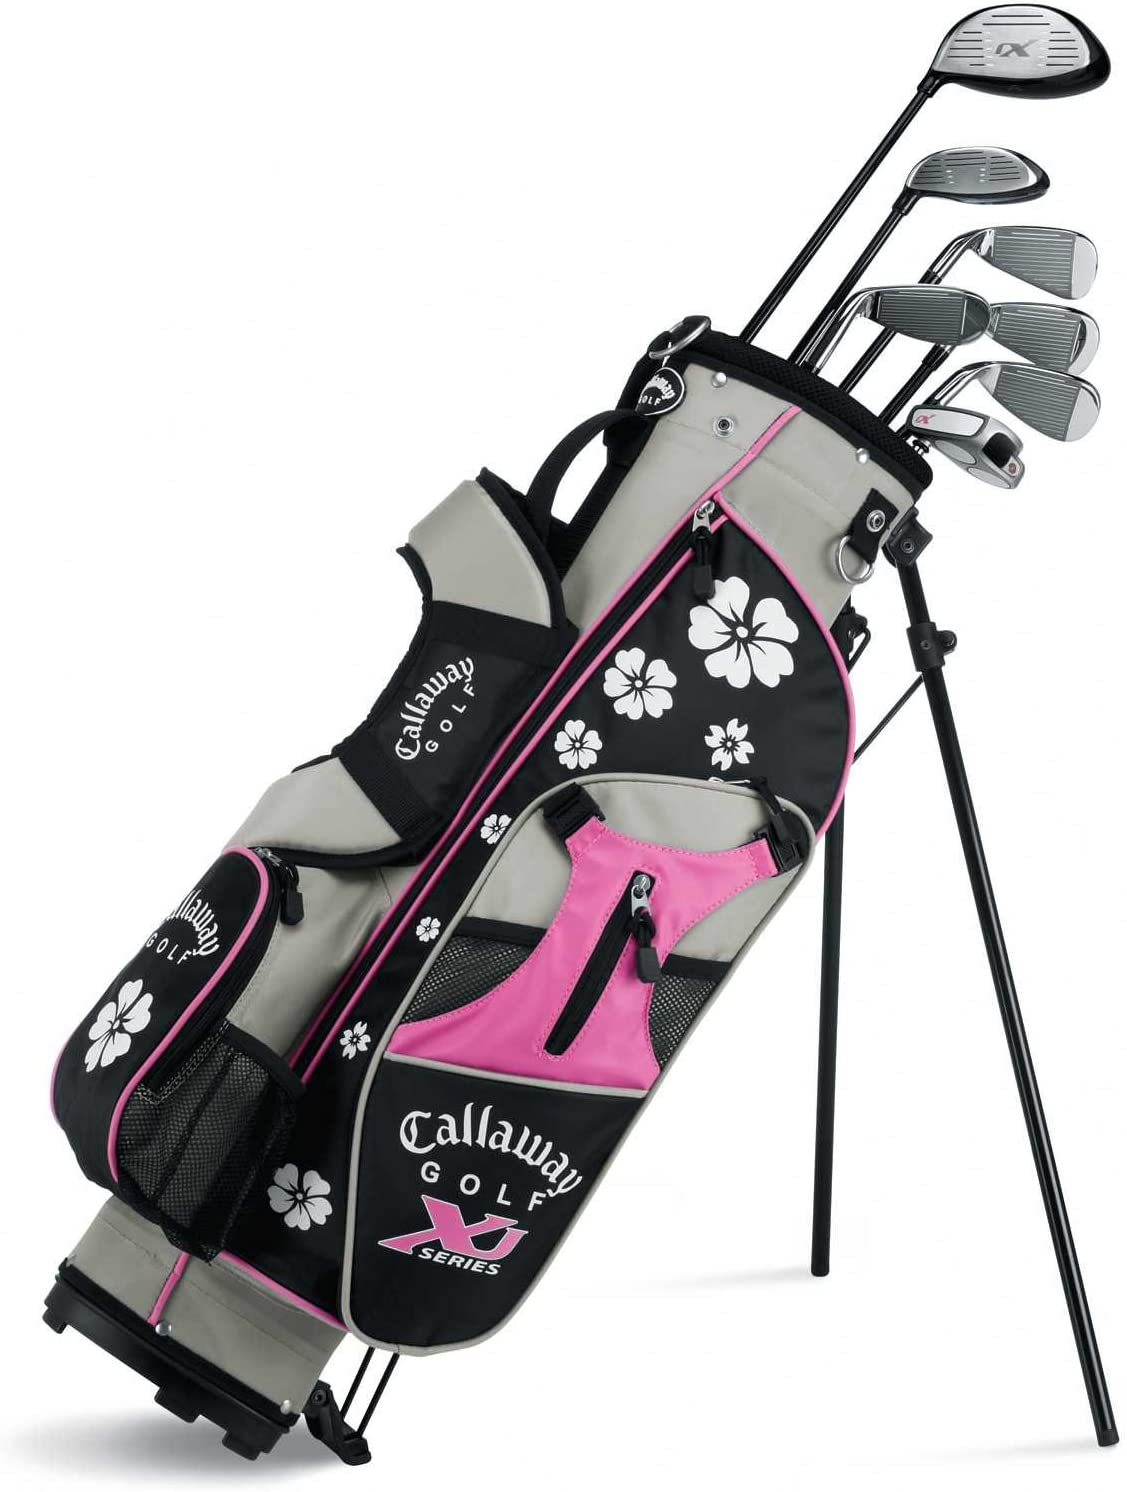 Amazon Com Callaway Xj Junior 11 Piece Girl S Golf Club Set 9 12 Years Old Left Hand Golf Club Complete Sets Sports Outdoors